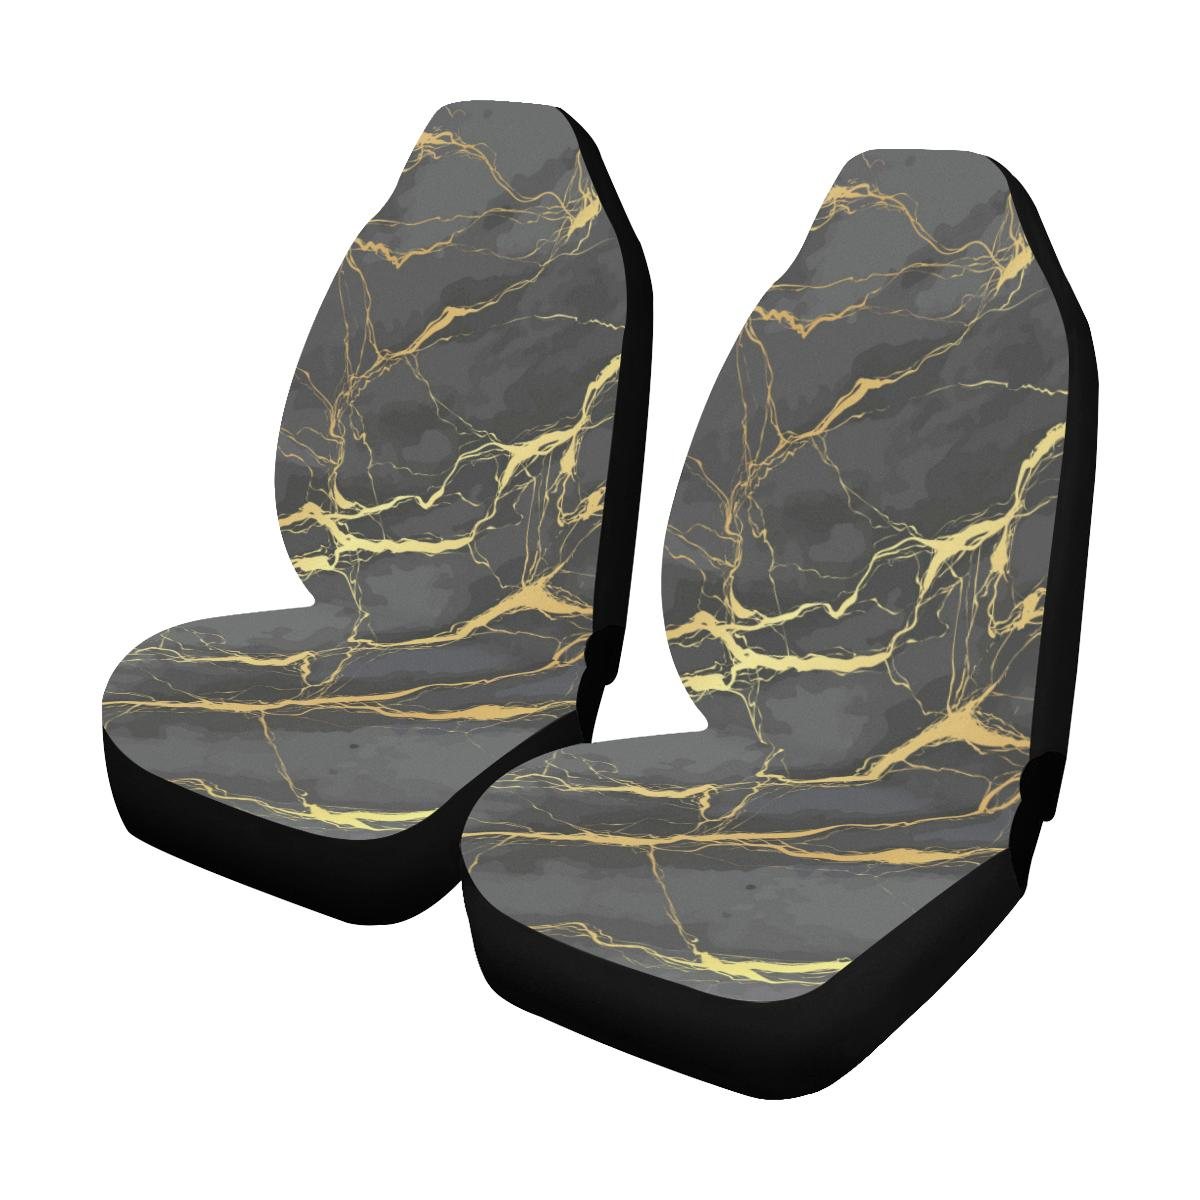 Marble Pattern Print Design 02 Car Seat Covers (Set of 2)-JORJUNE.COM